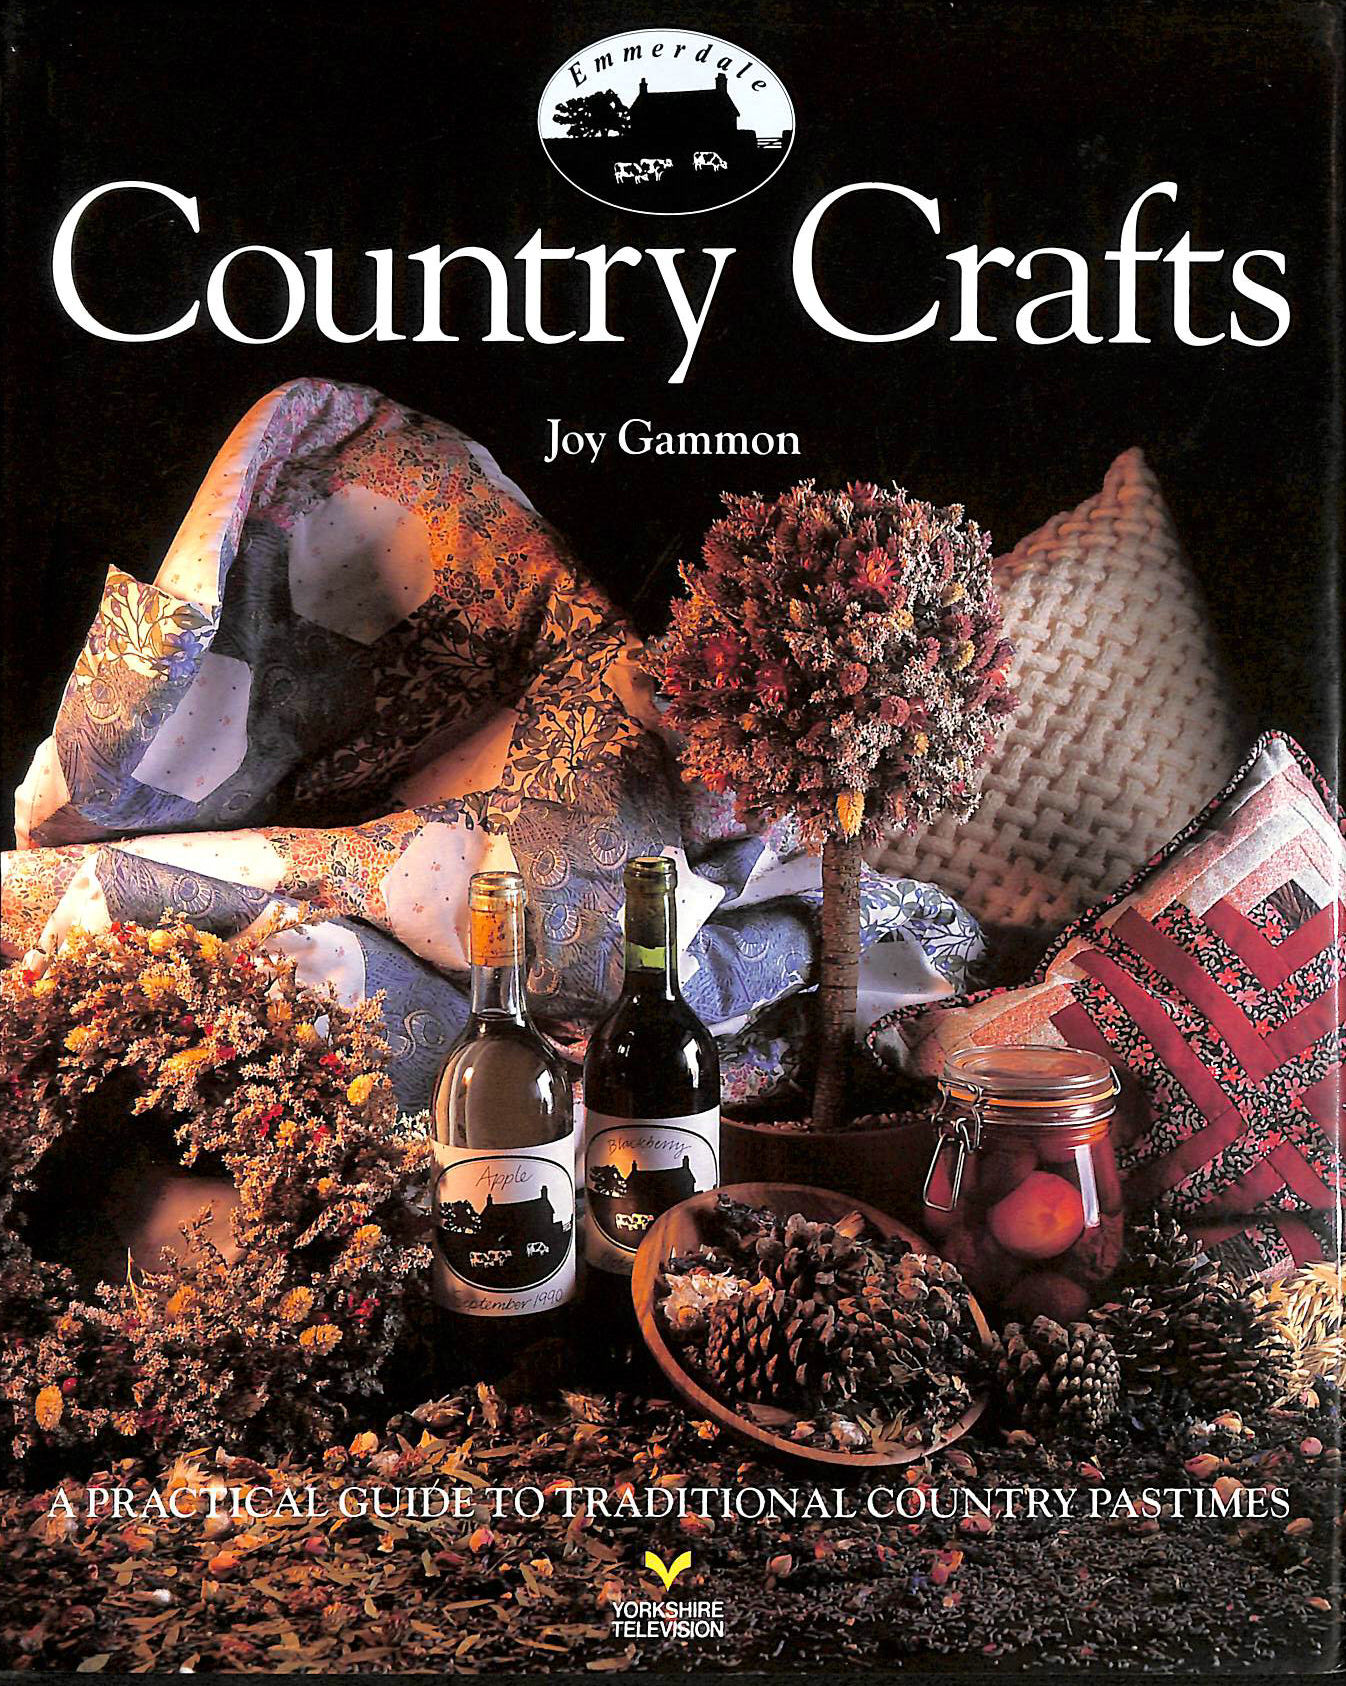 Image for Emmerdale Country Crafts